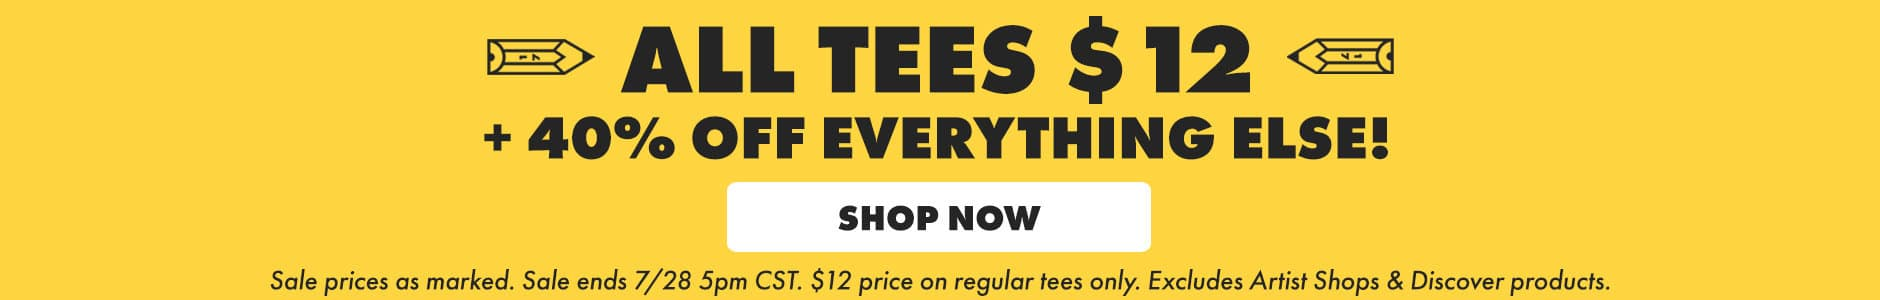 All tees $12 + 40% off everything else! Shop now. Sale prices as marked. Sale ends 7/28 at 5PM CST. Sale price on regular tees only. Excludes Artist Shops and Discover products.